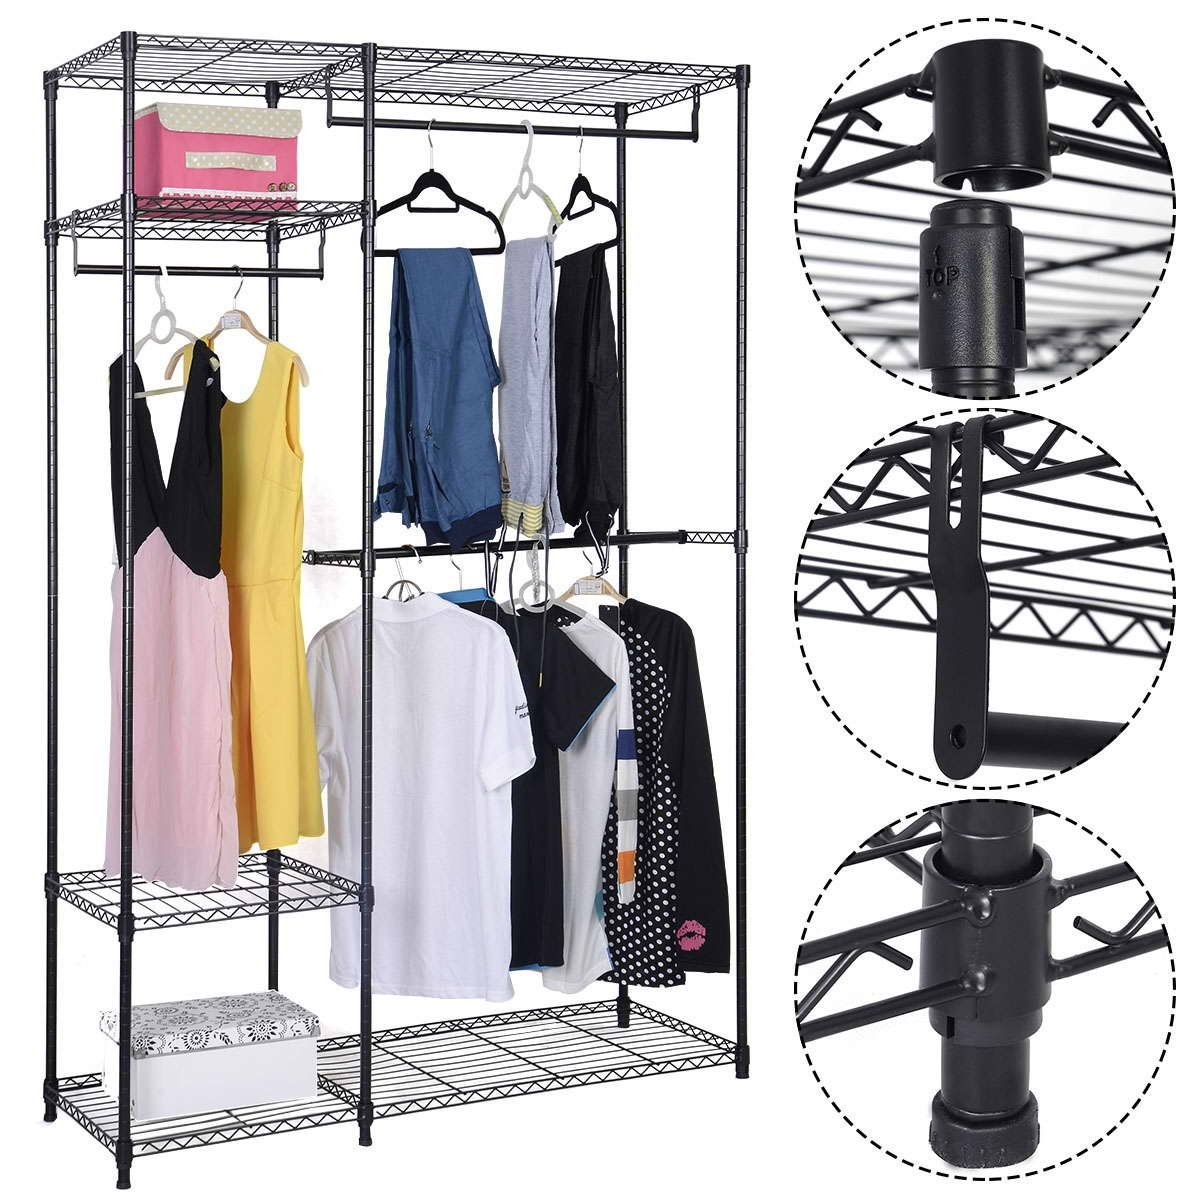 Safstar Portable Clothes Wardrobe Garment Rack Home Closet